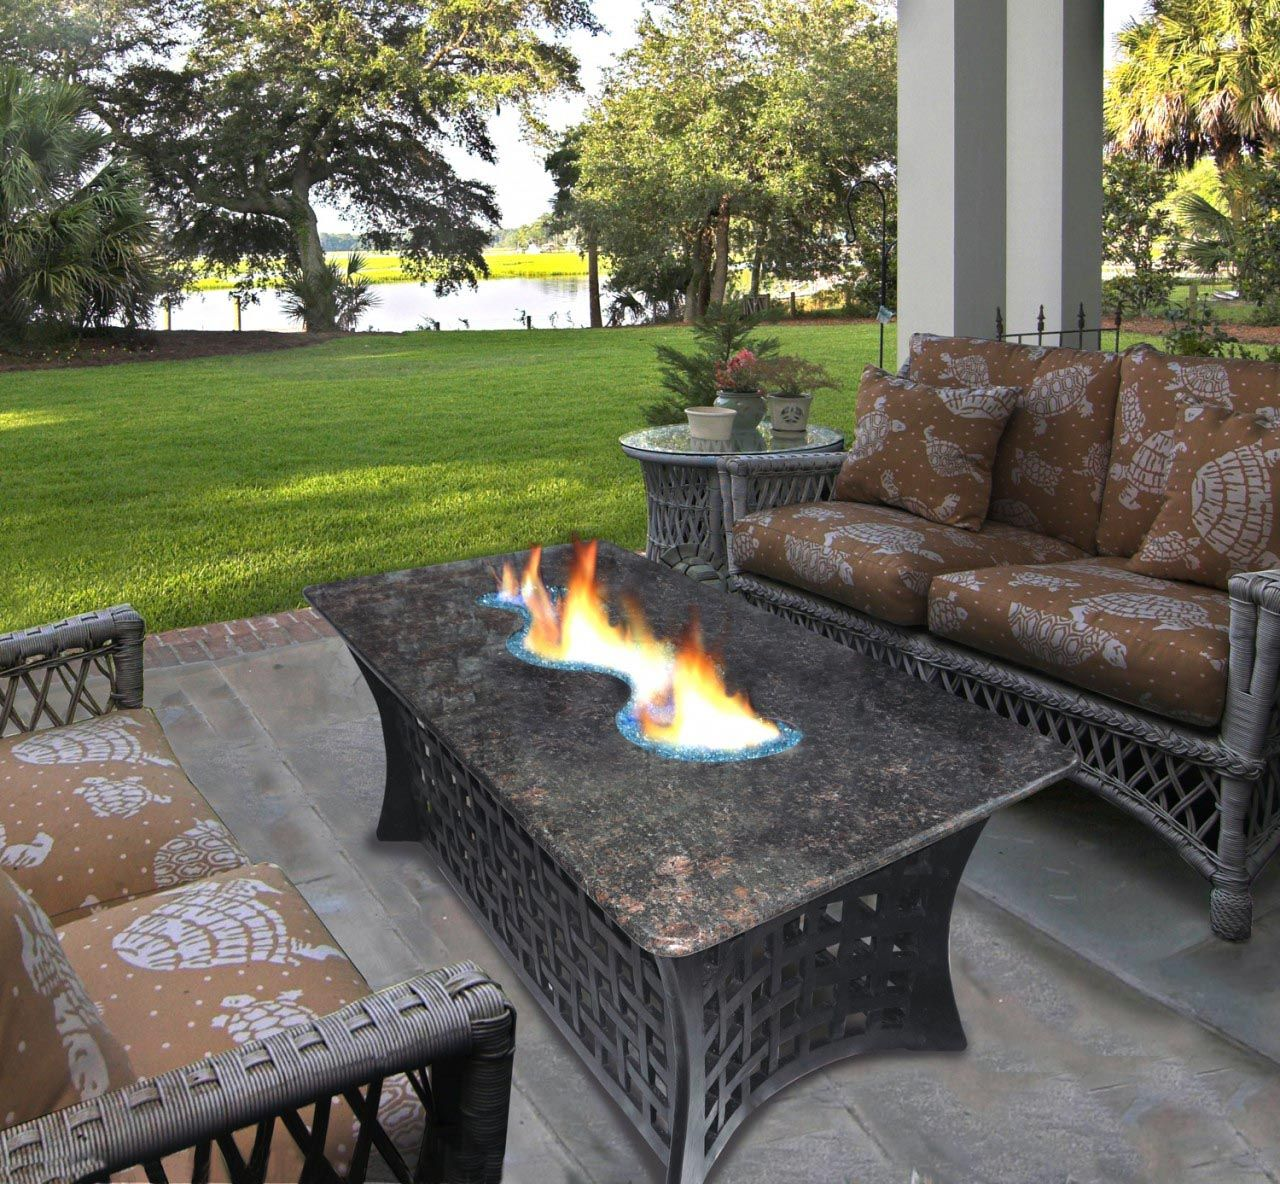 Outdoor Furniture Fire Pit Table And Chairs Fire Pit Pinterest - Outdoor furniture with gas fire pit table